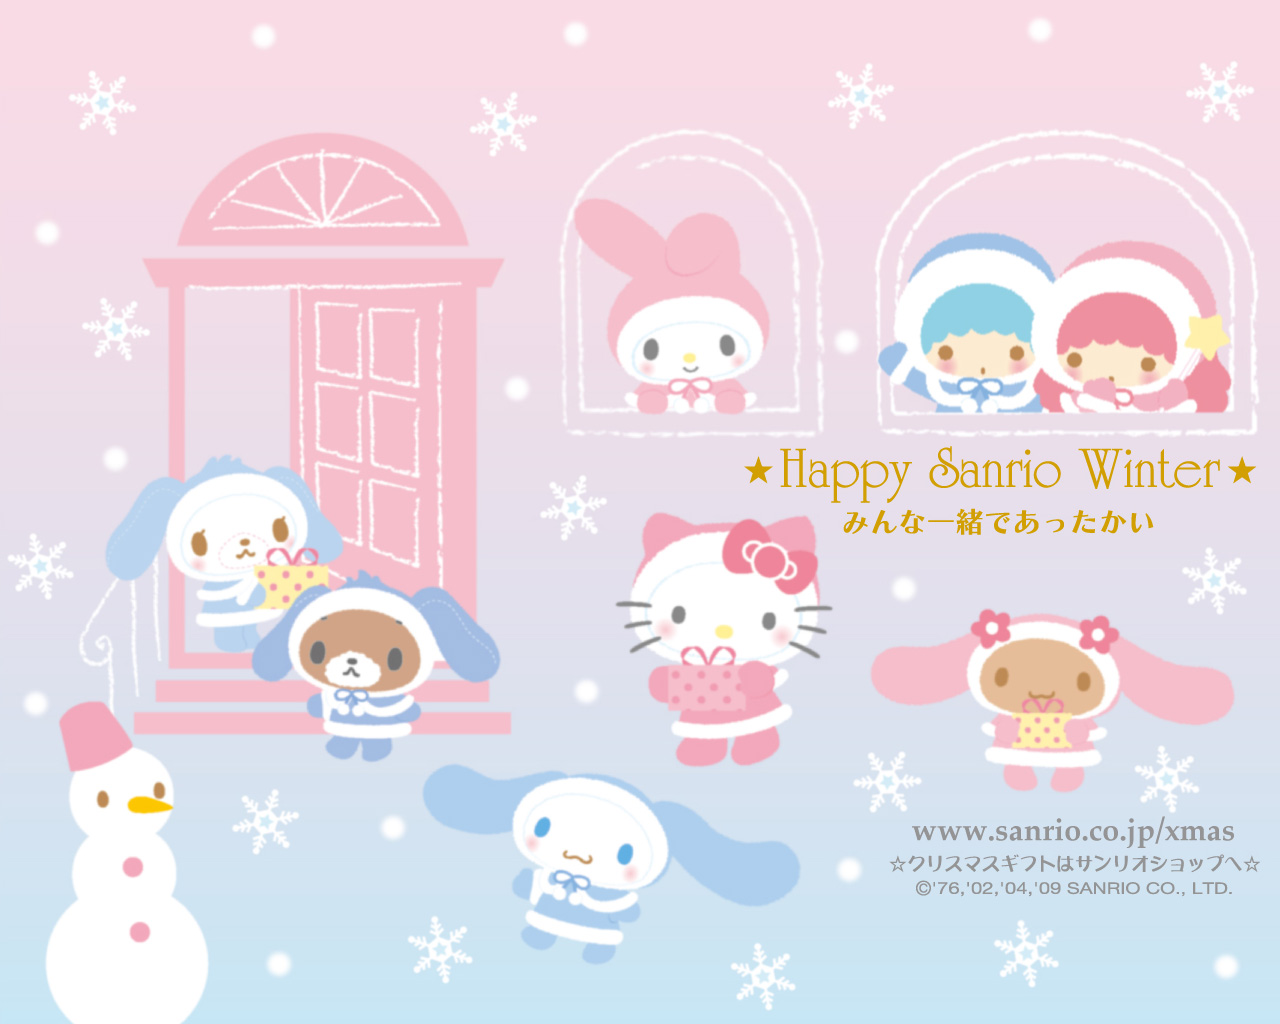 Par So cute79 dans Wallpapers le 11 Aot 2013 2153 1280x1024